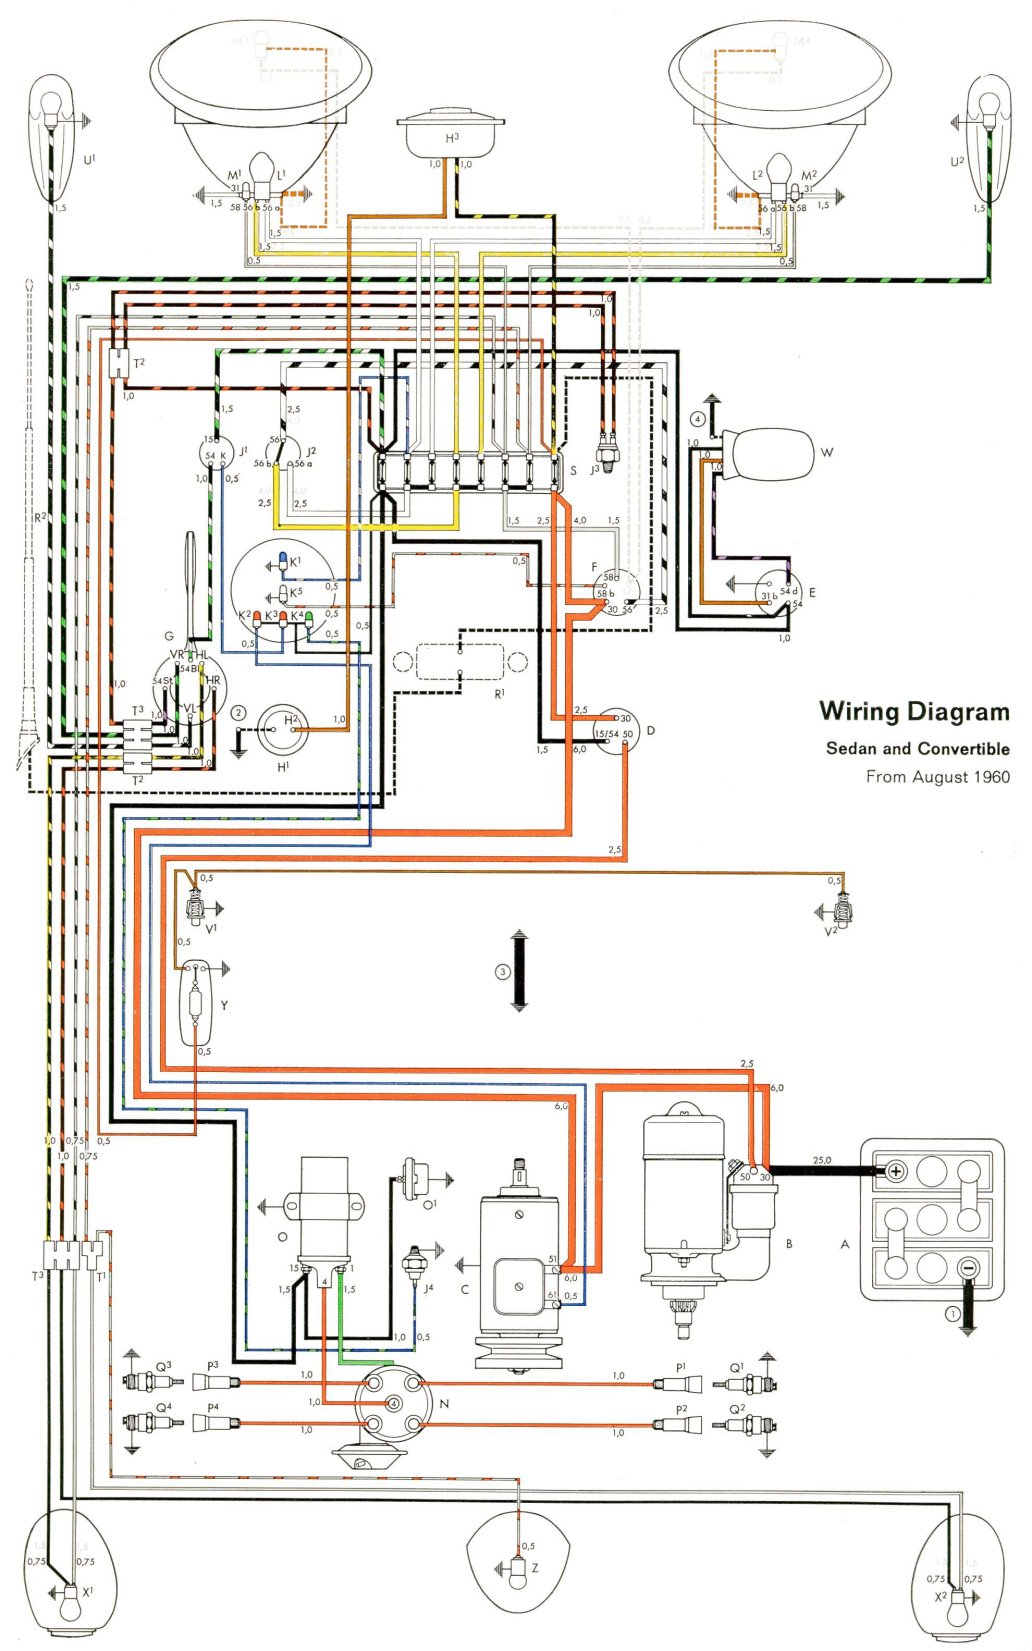 bug_61 1961 beetle wiring diagram thegoldenbug com 74 VW Beetle Wiring Diagram at crackthecode.co